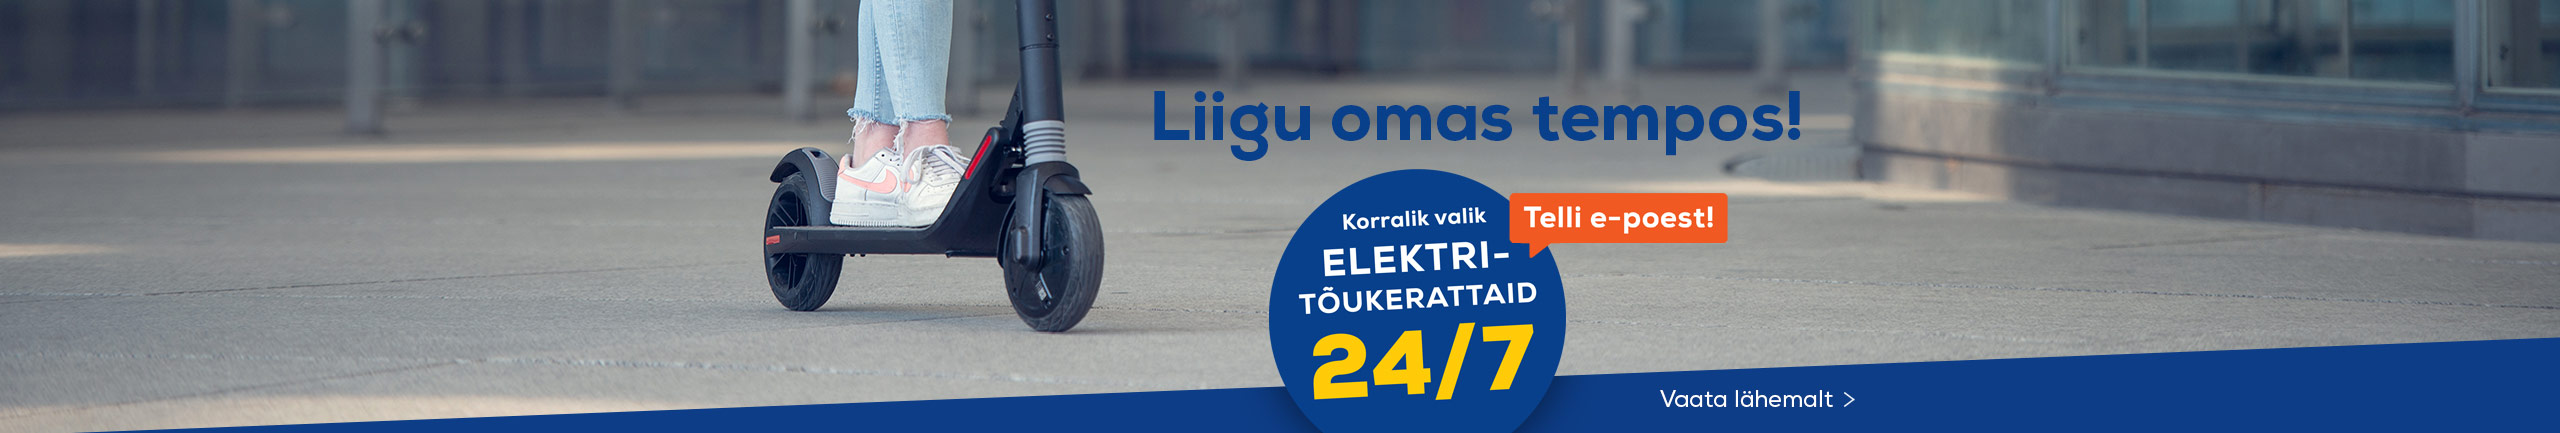 FPL Electric scooters